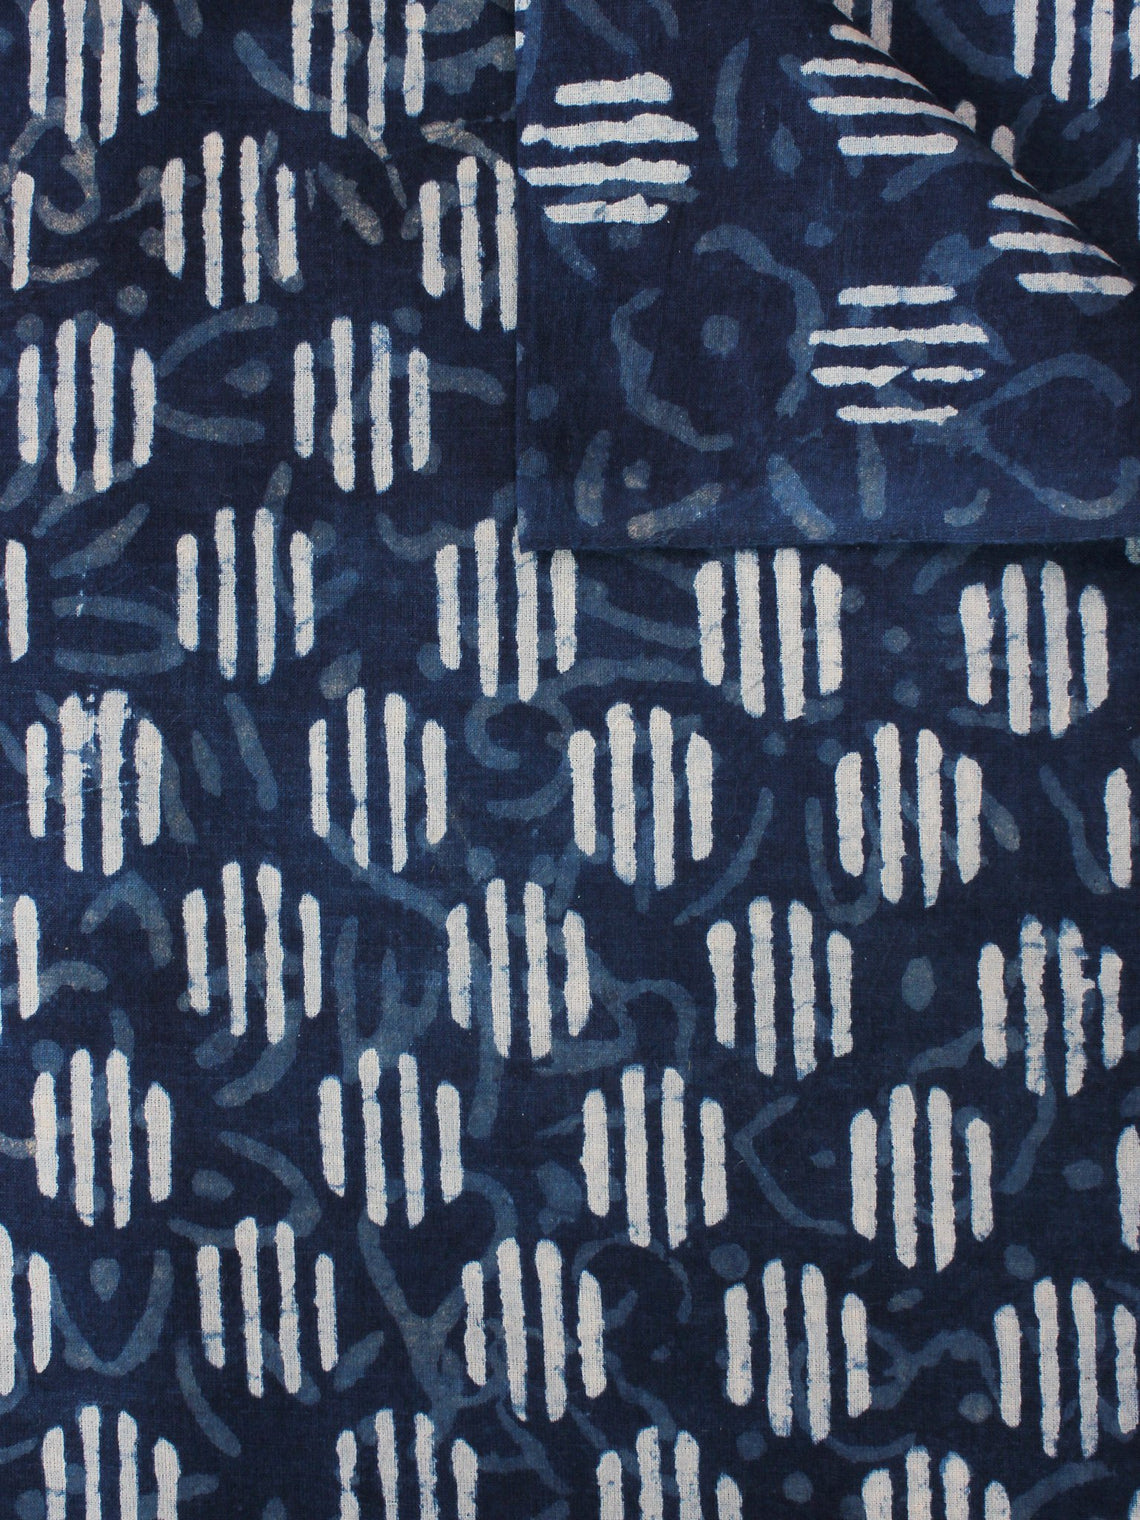 Indigo White Hand Block Printed Cotton Fabric Per Meter - F0916360